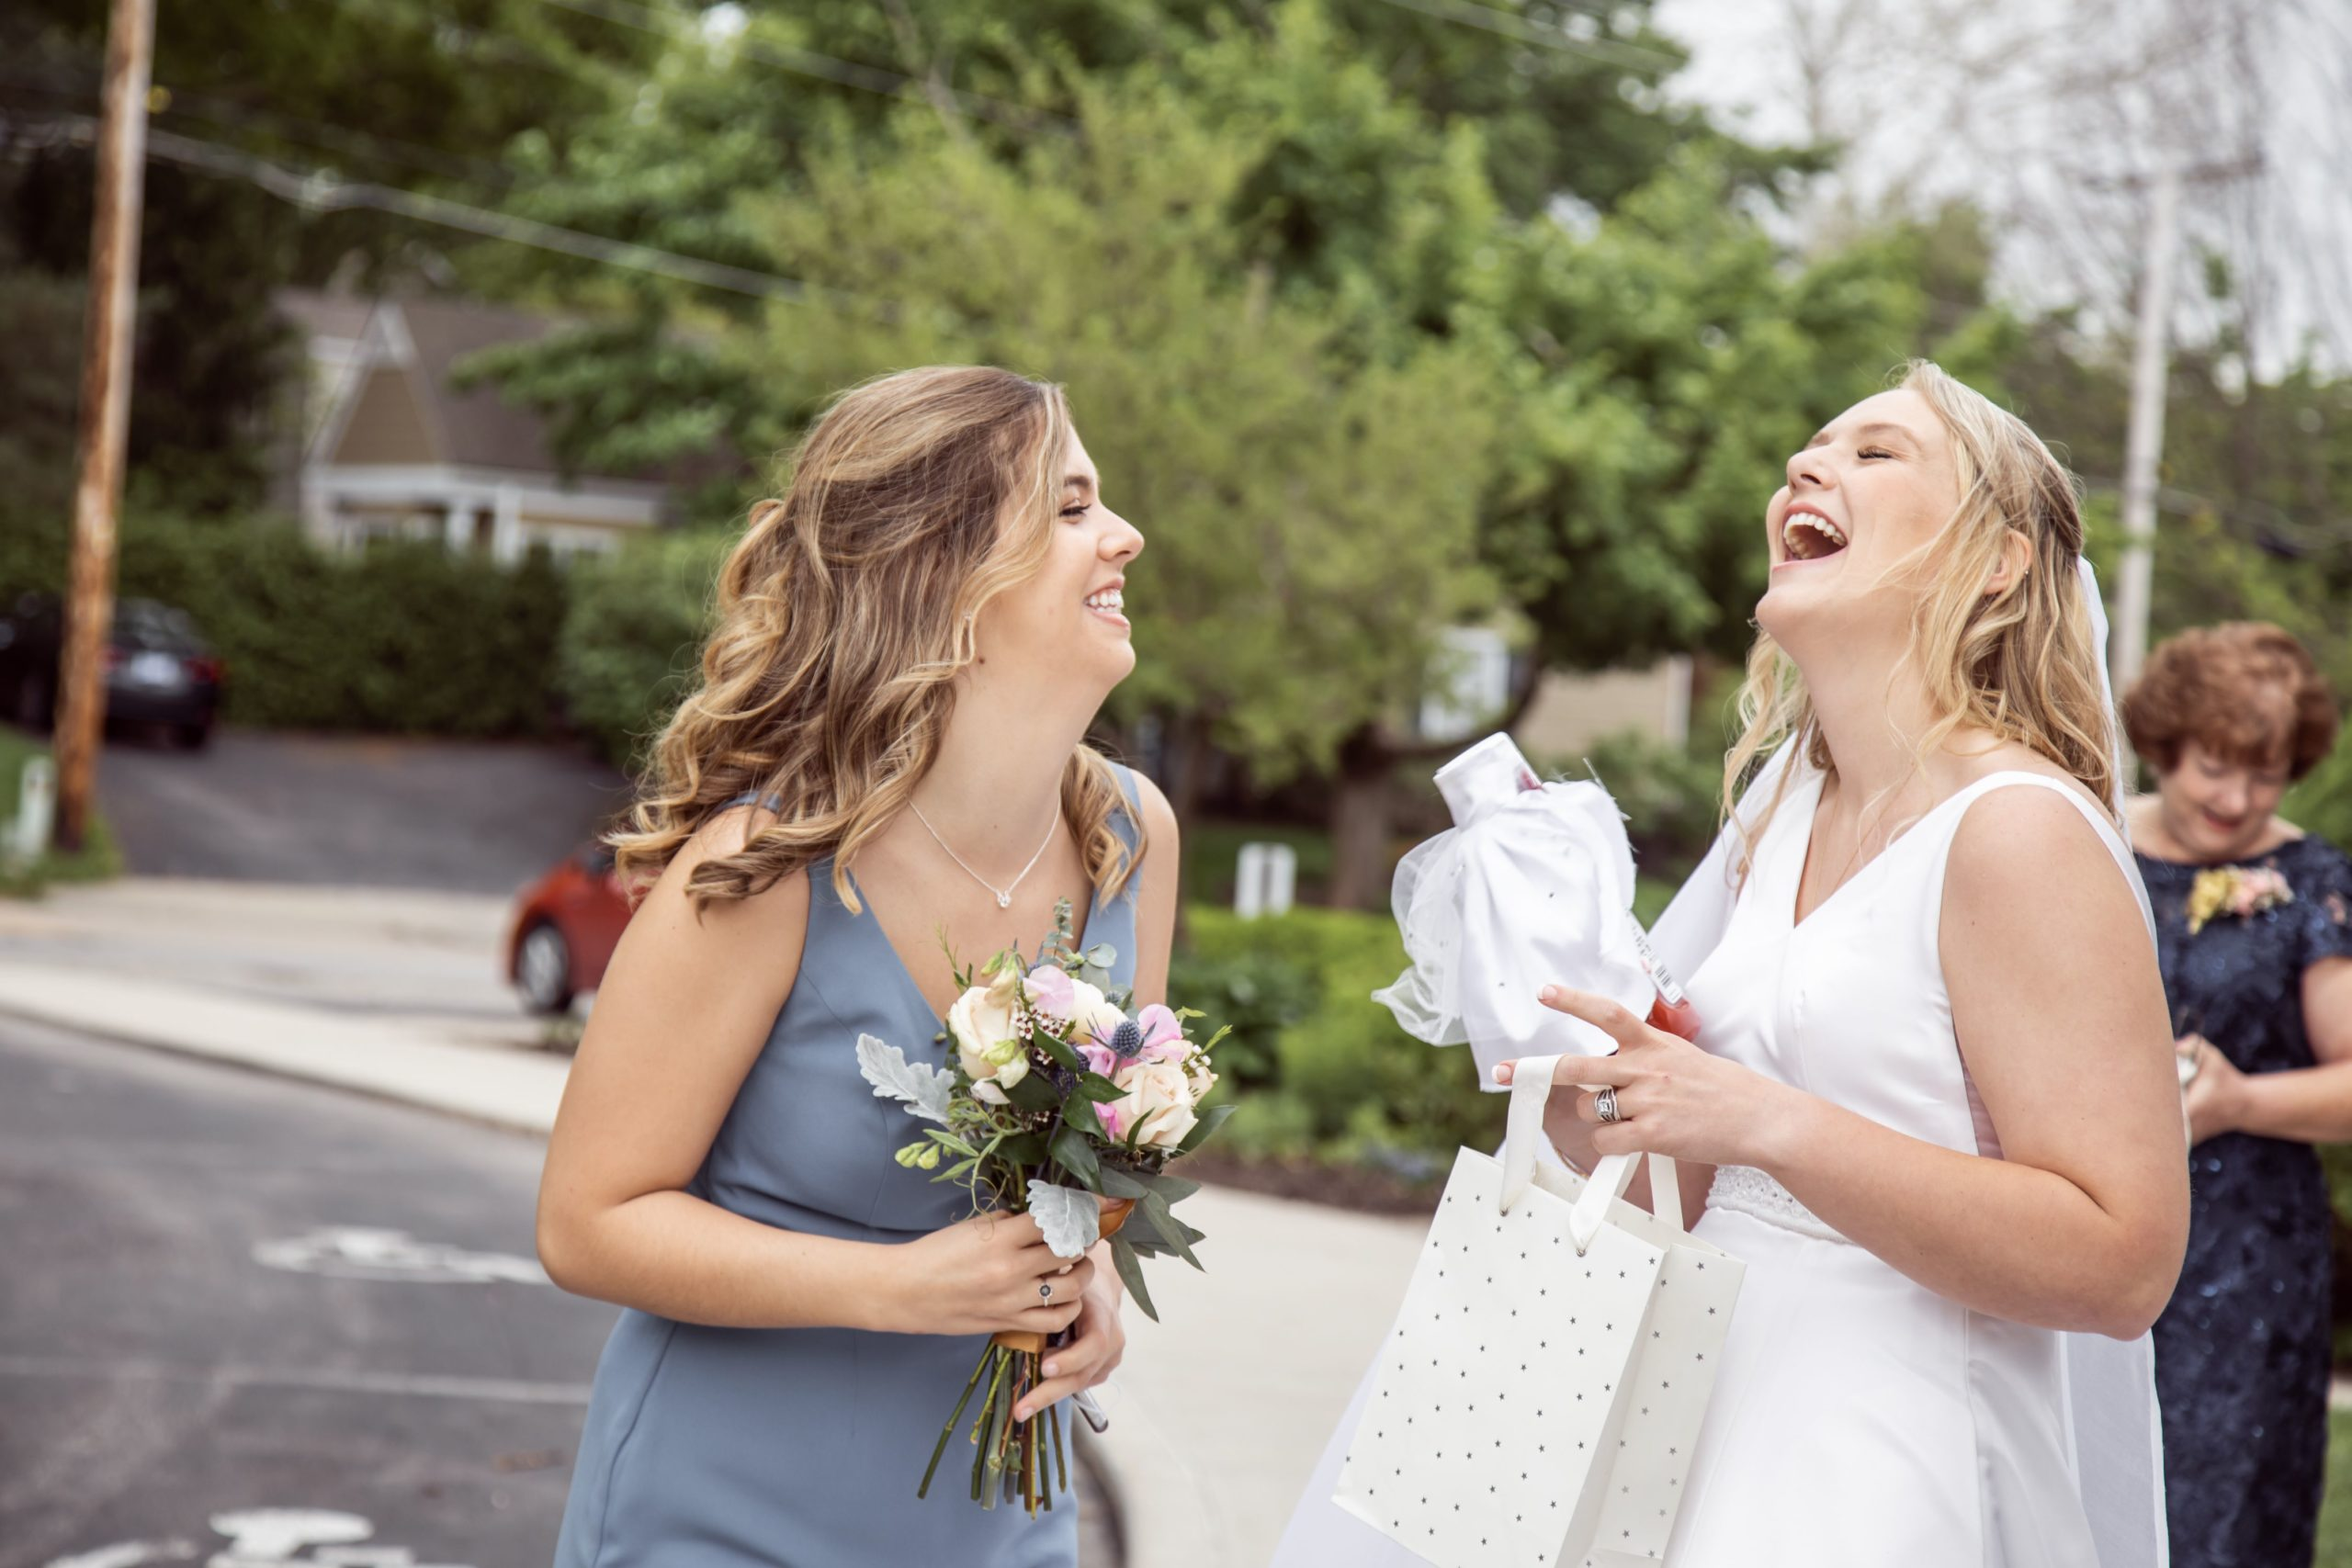 Bridesmaid Duties You NEED To Know